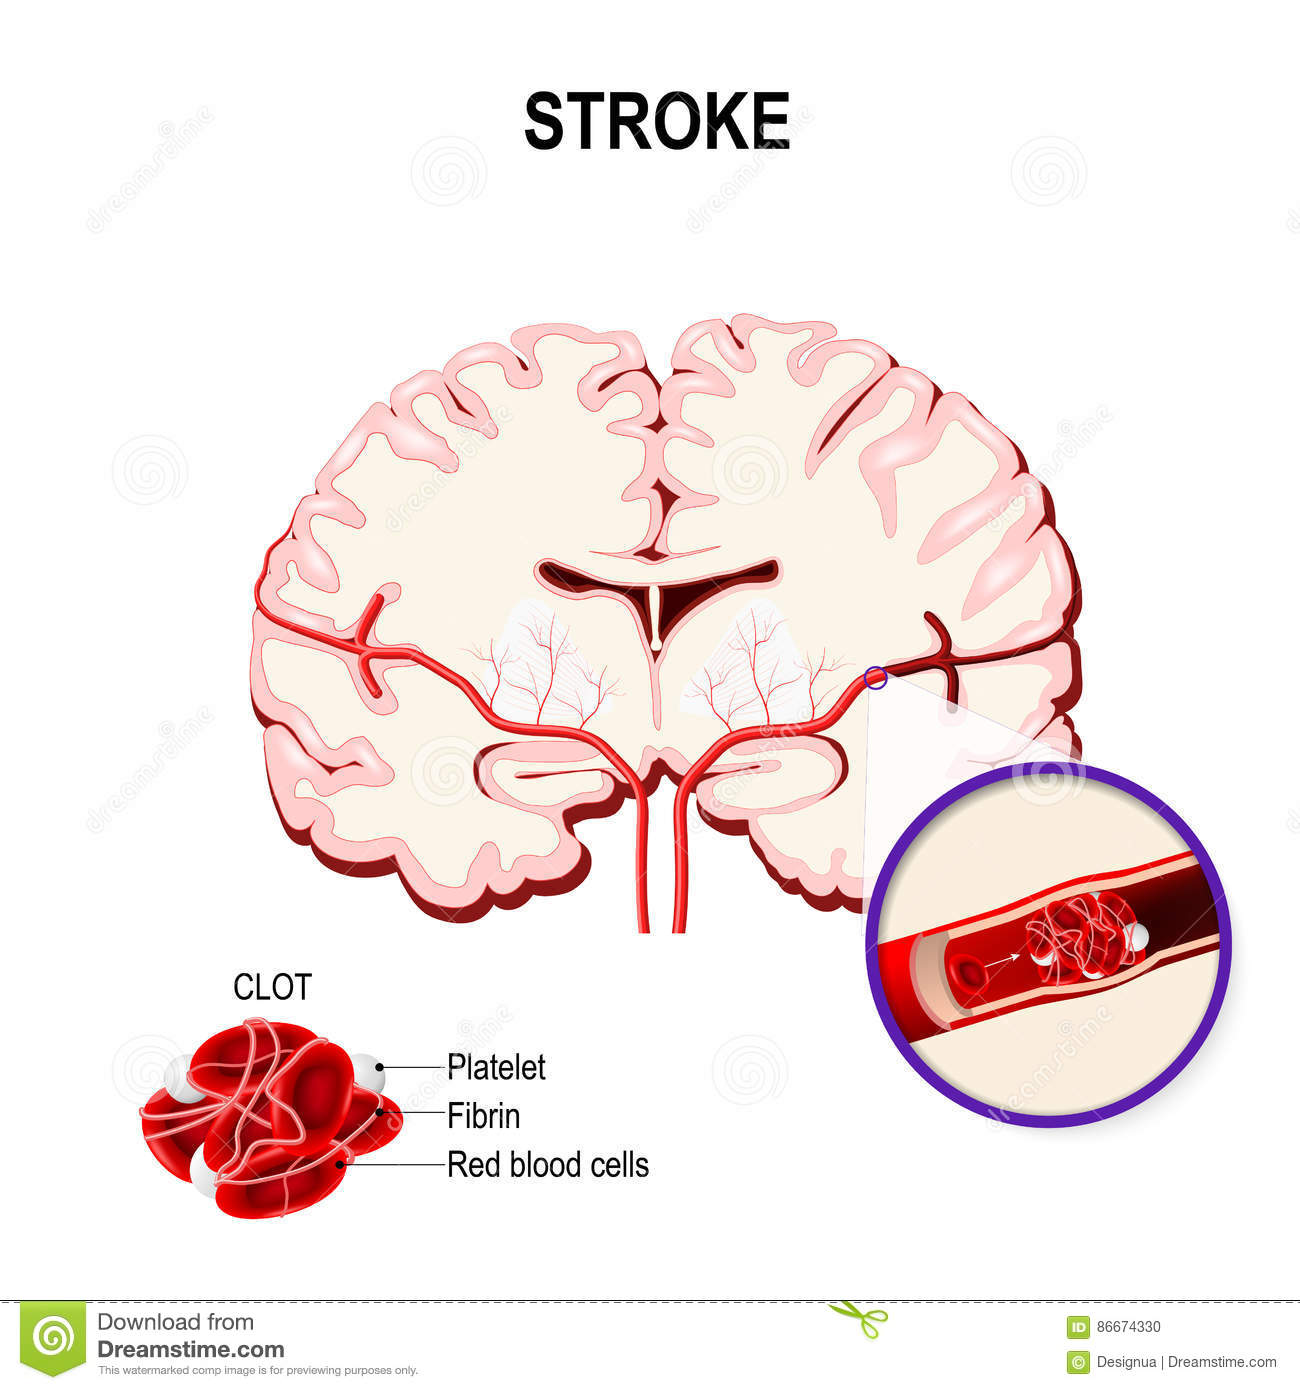 ischemic stroke Introduction stroke and cerebrovascular disease is a major cause of mortality and disability worldwide (1,2)ischemic stroke is caused by.